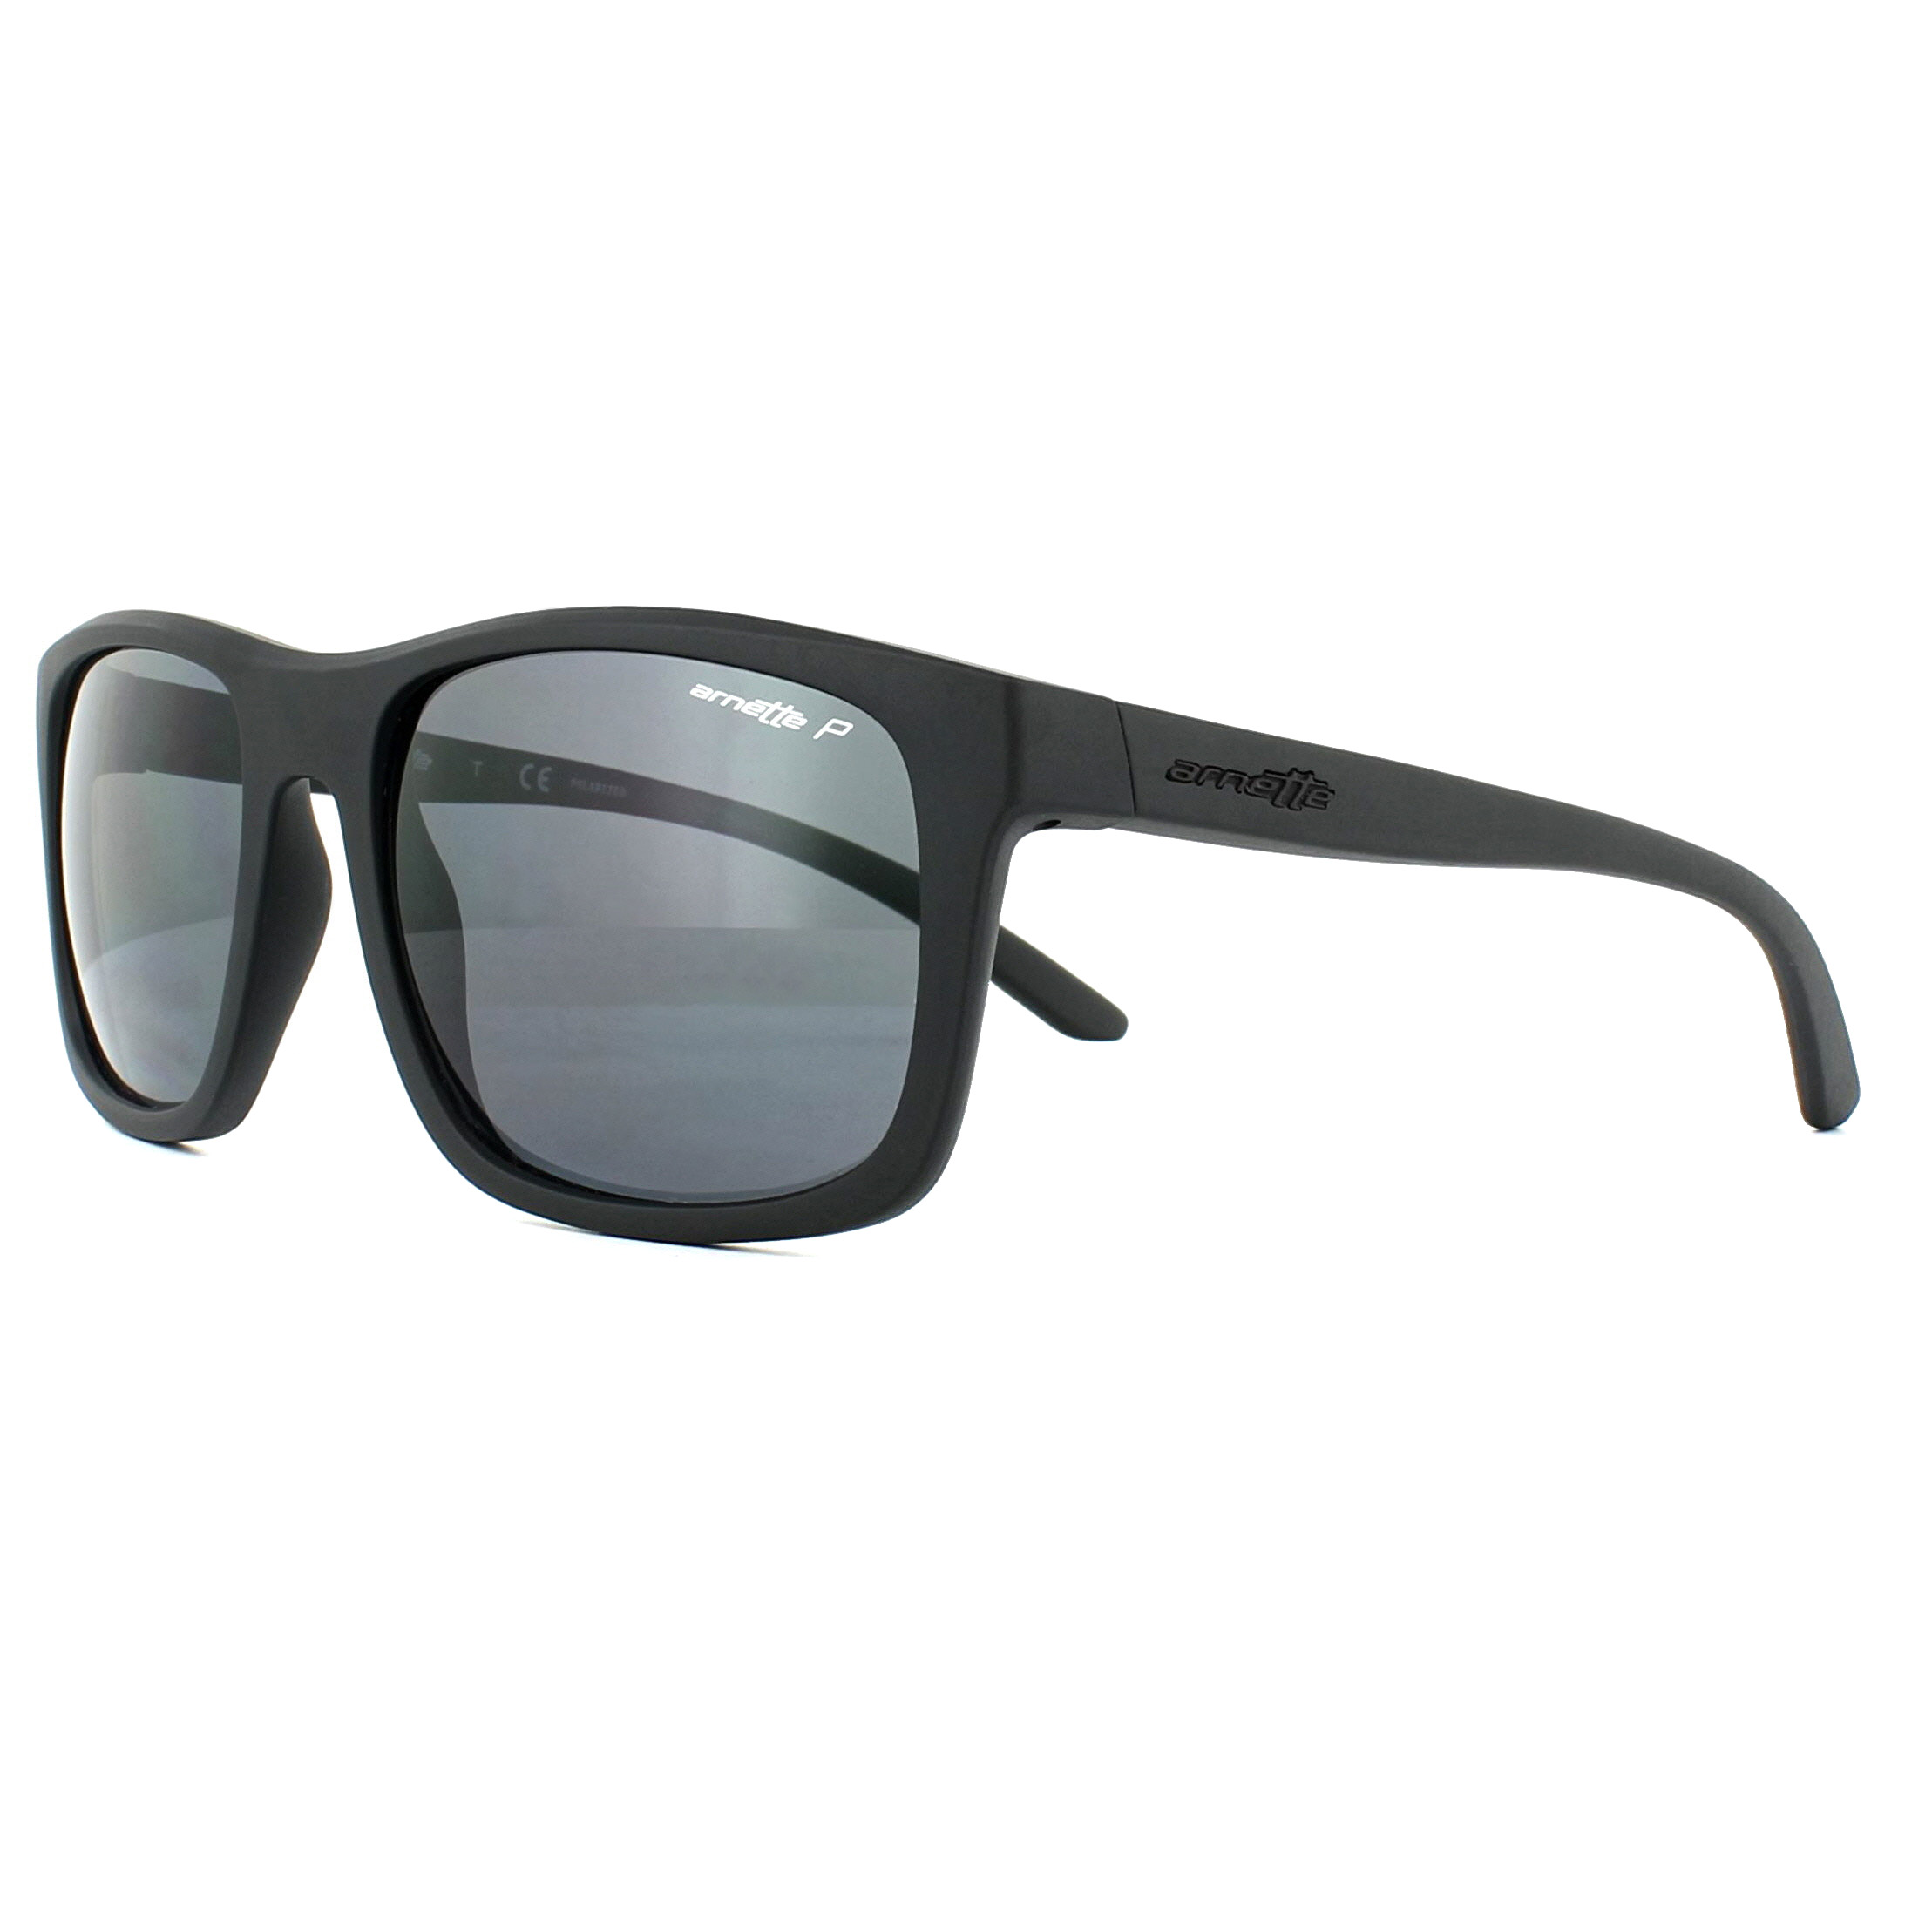 48938d0ece Sentinel Arnette Sunglasses Complementary 4233 01 81 Matt Black Grey  Polarized